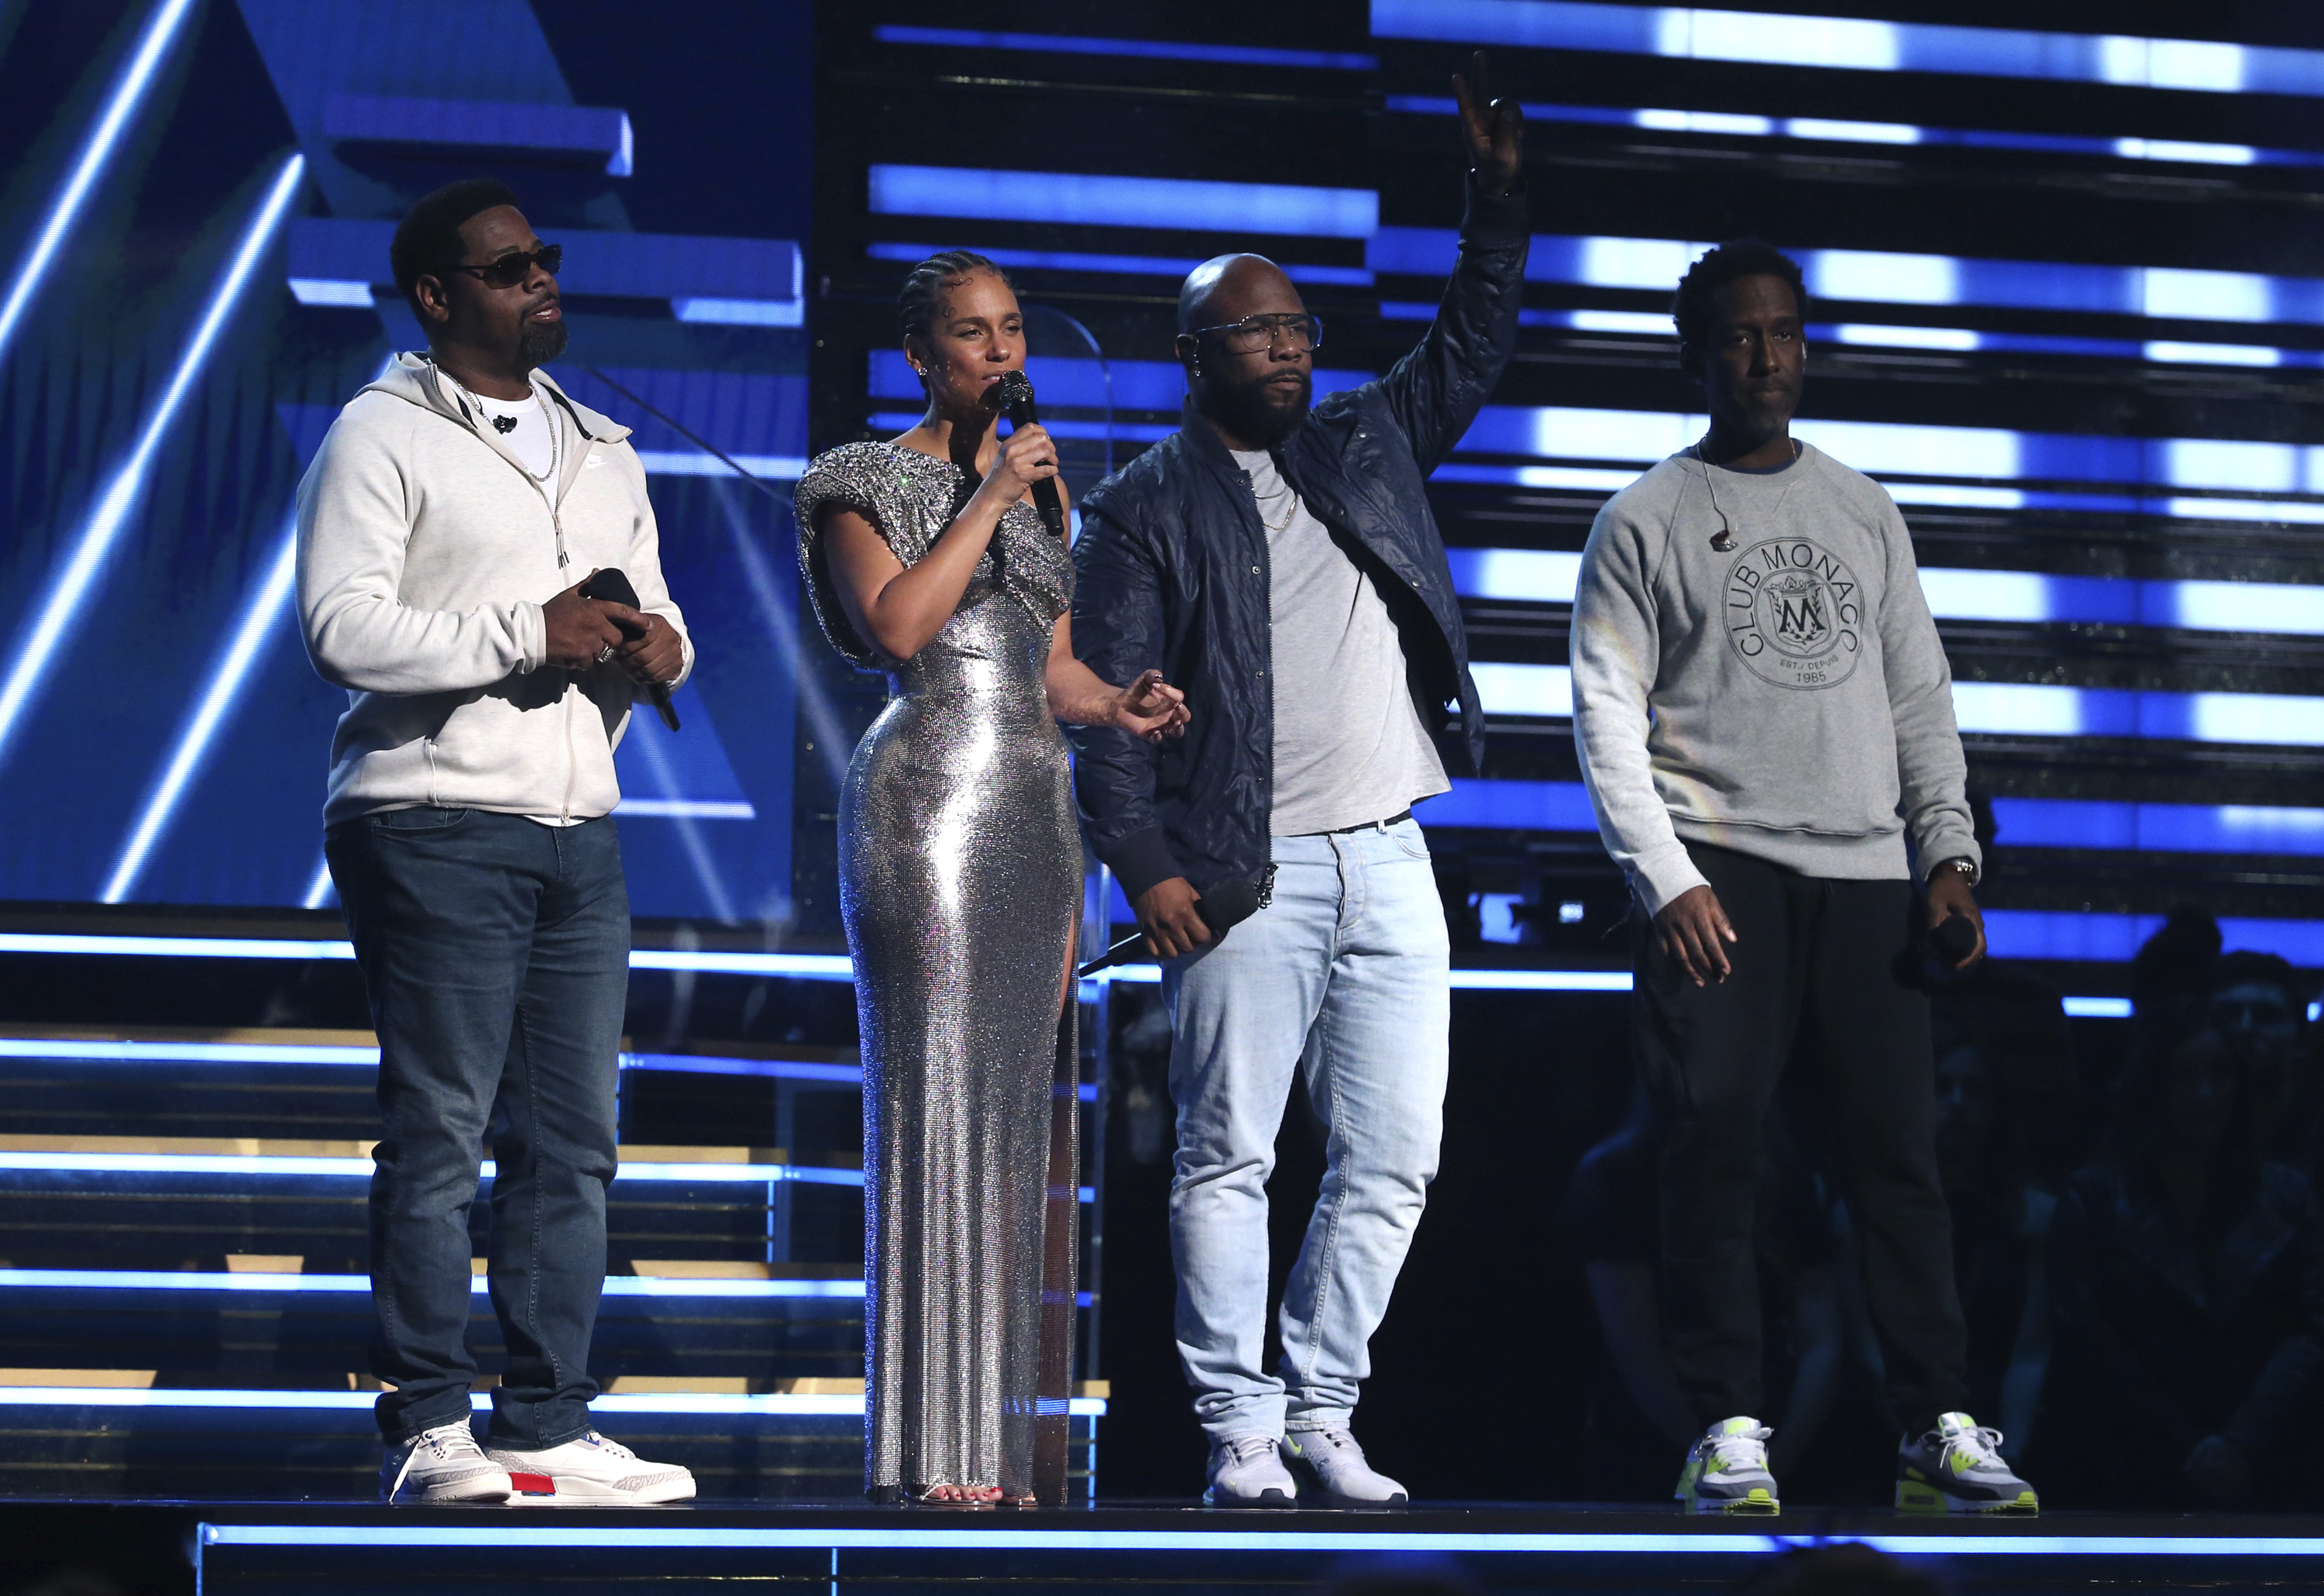 Nathan Morris (from left)Wanya Morris and Shawn Stockman of Boyz II Men join Alicia Keys to sing a tribute in honor of the late Kobe Bryant at the 62nd annual Grammy Awards on Sunday night in Los Angeles.